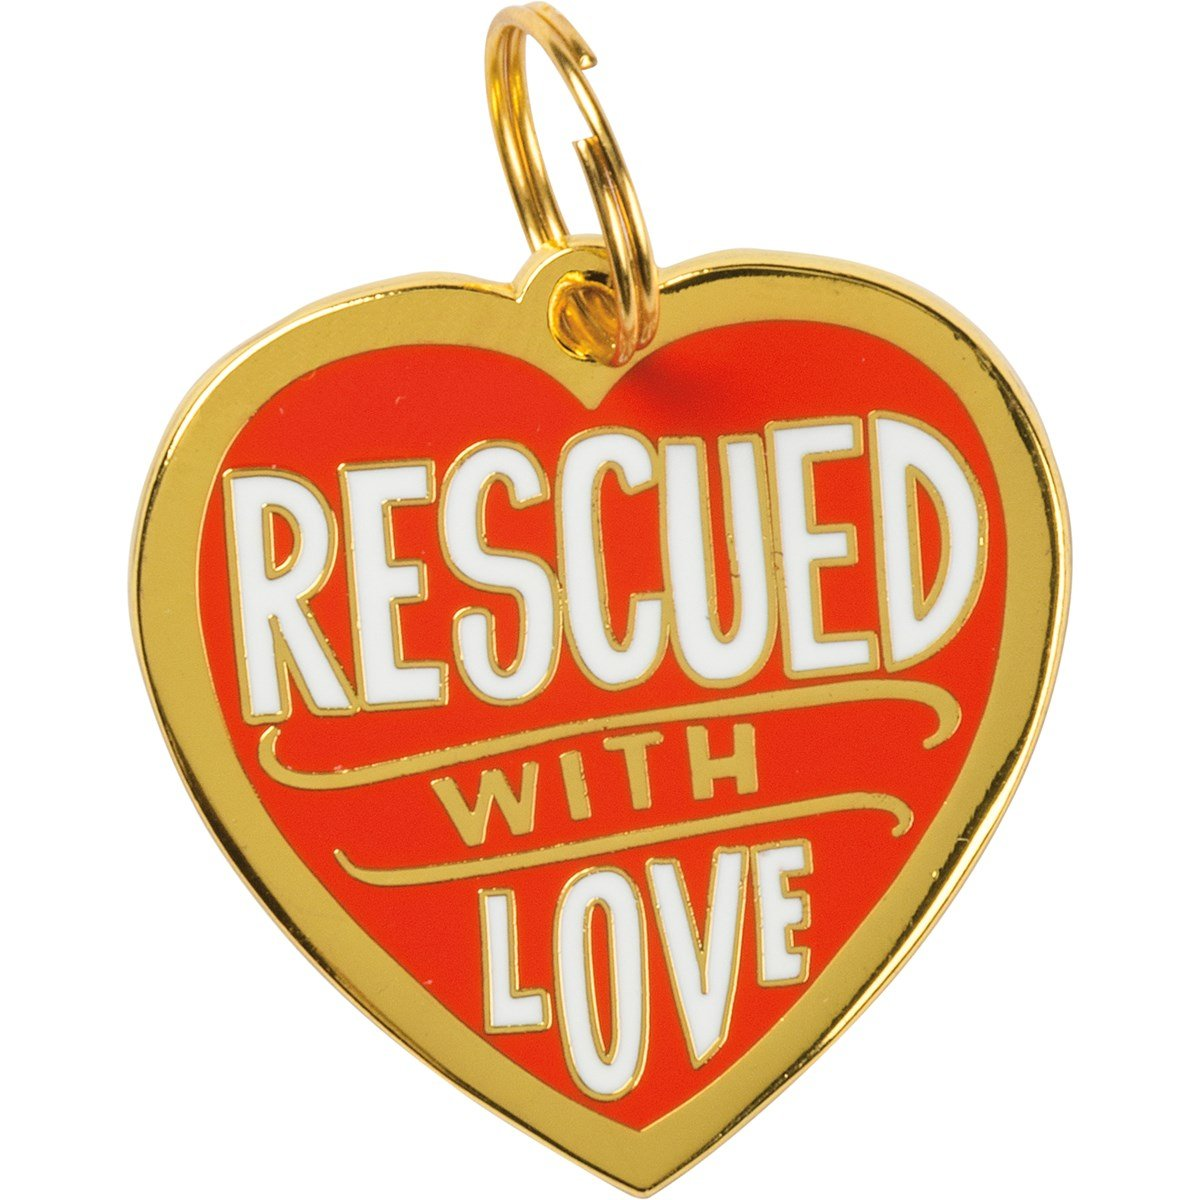 "Collar Charm - Rescued With Love - Charm: 1.25"" x 1.25"", Card: 3"" x 5"" - Metal, Enamel, Paper"